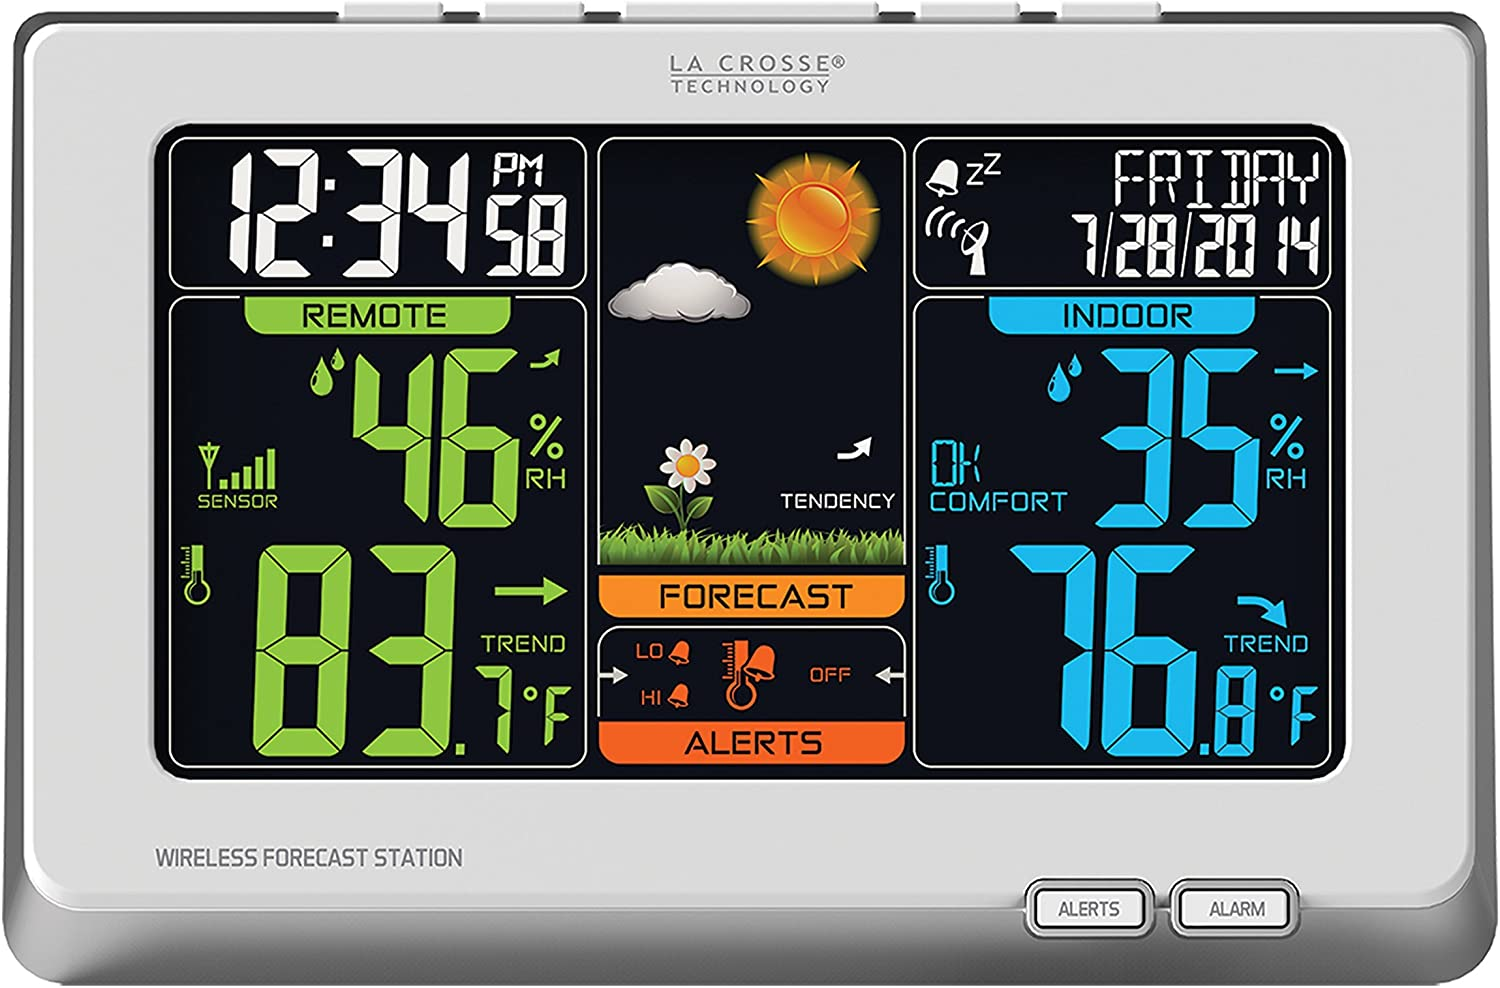 Amazon Com La Crosse Technology C83332 Wireless Atomic Digital Color Weather Forecast Station With Alerts 8 34l X 1 03w X 5 48h Inches White Home Kitchen